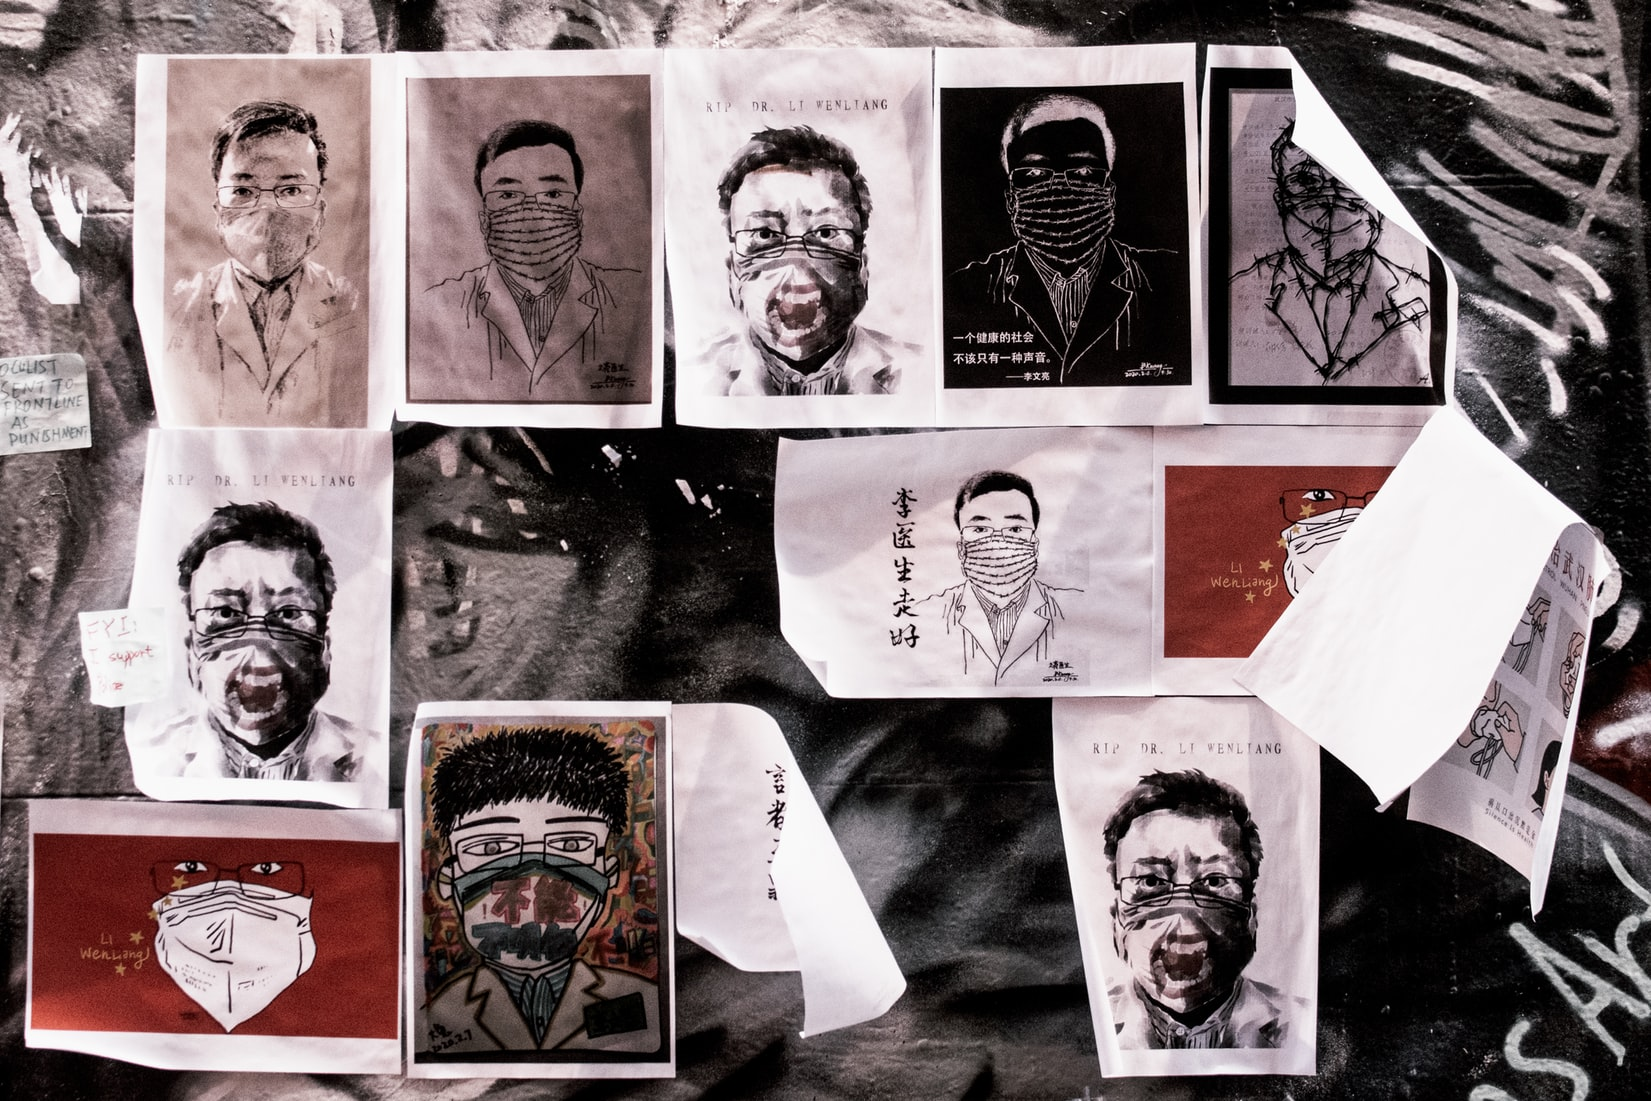 Drawings of Chinese man with face mask on wall